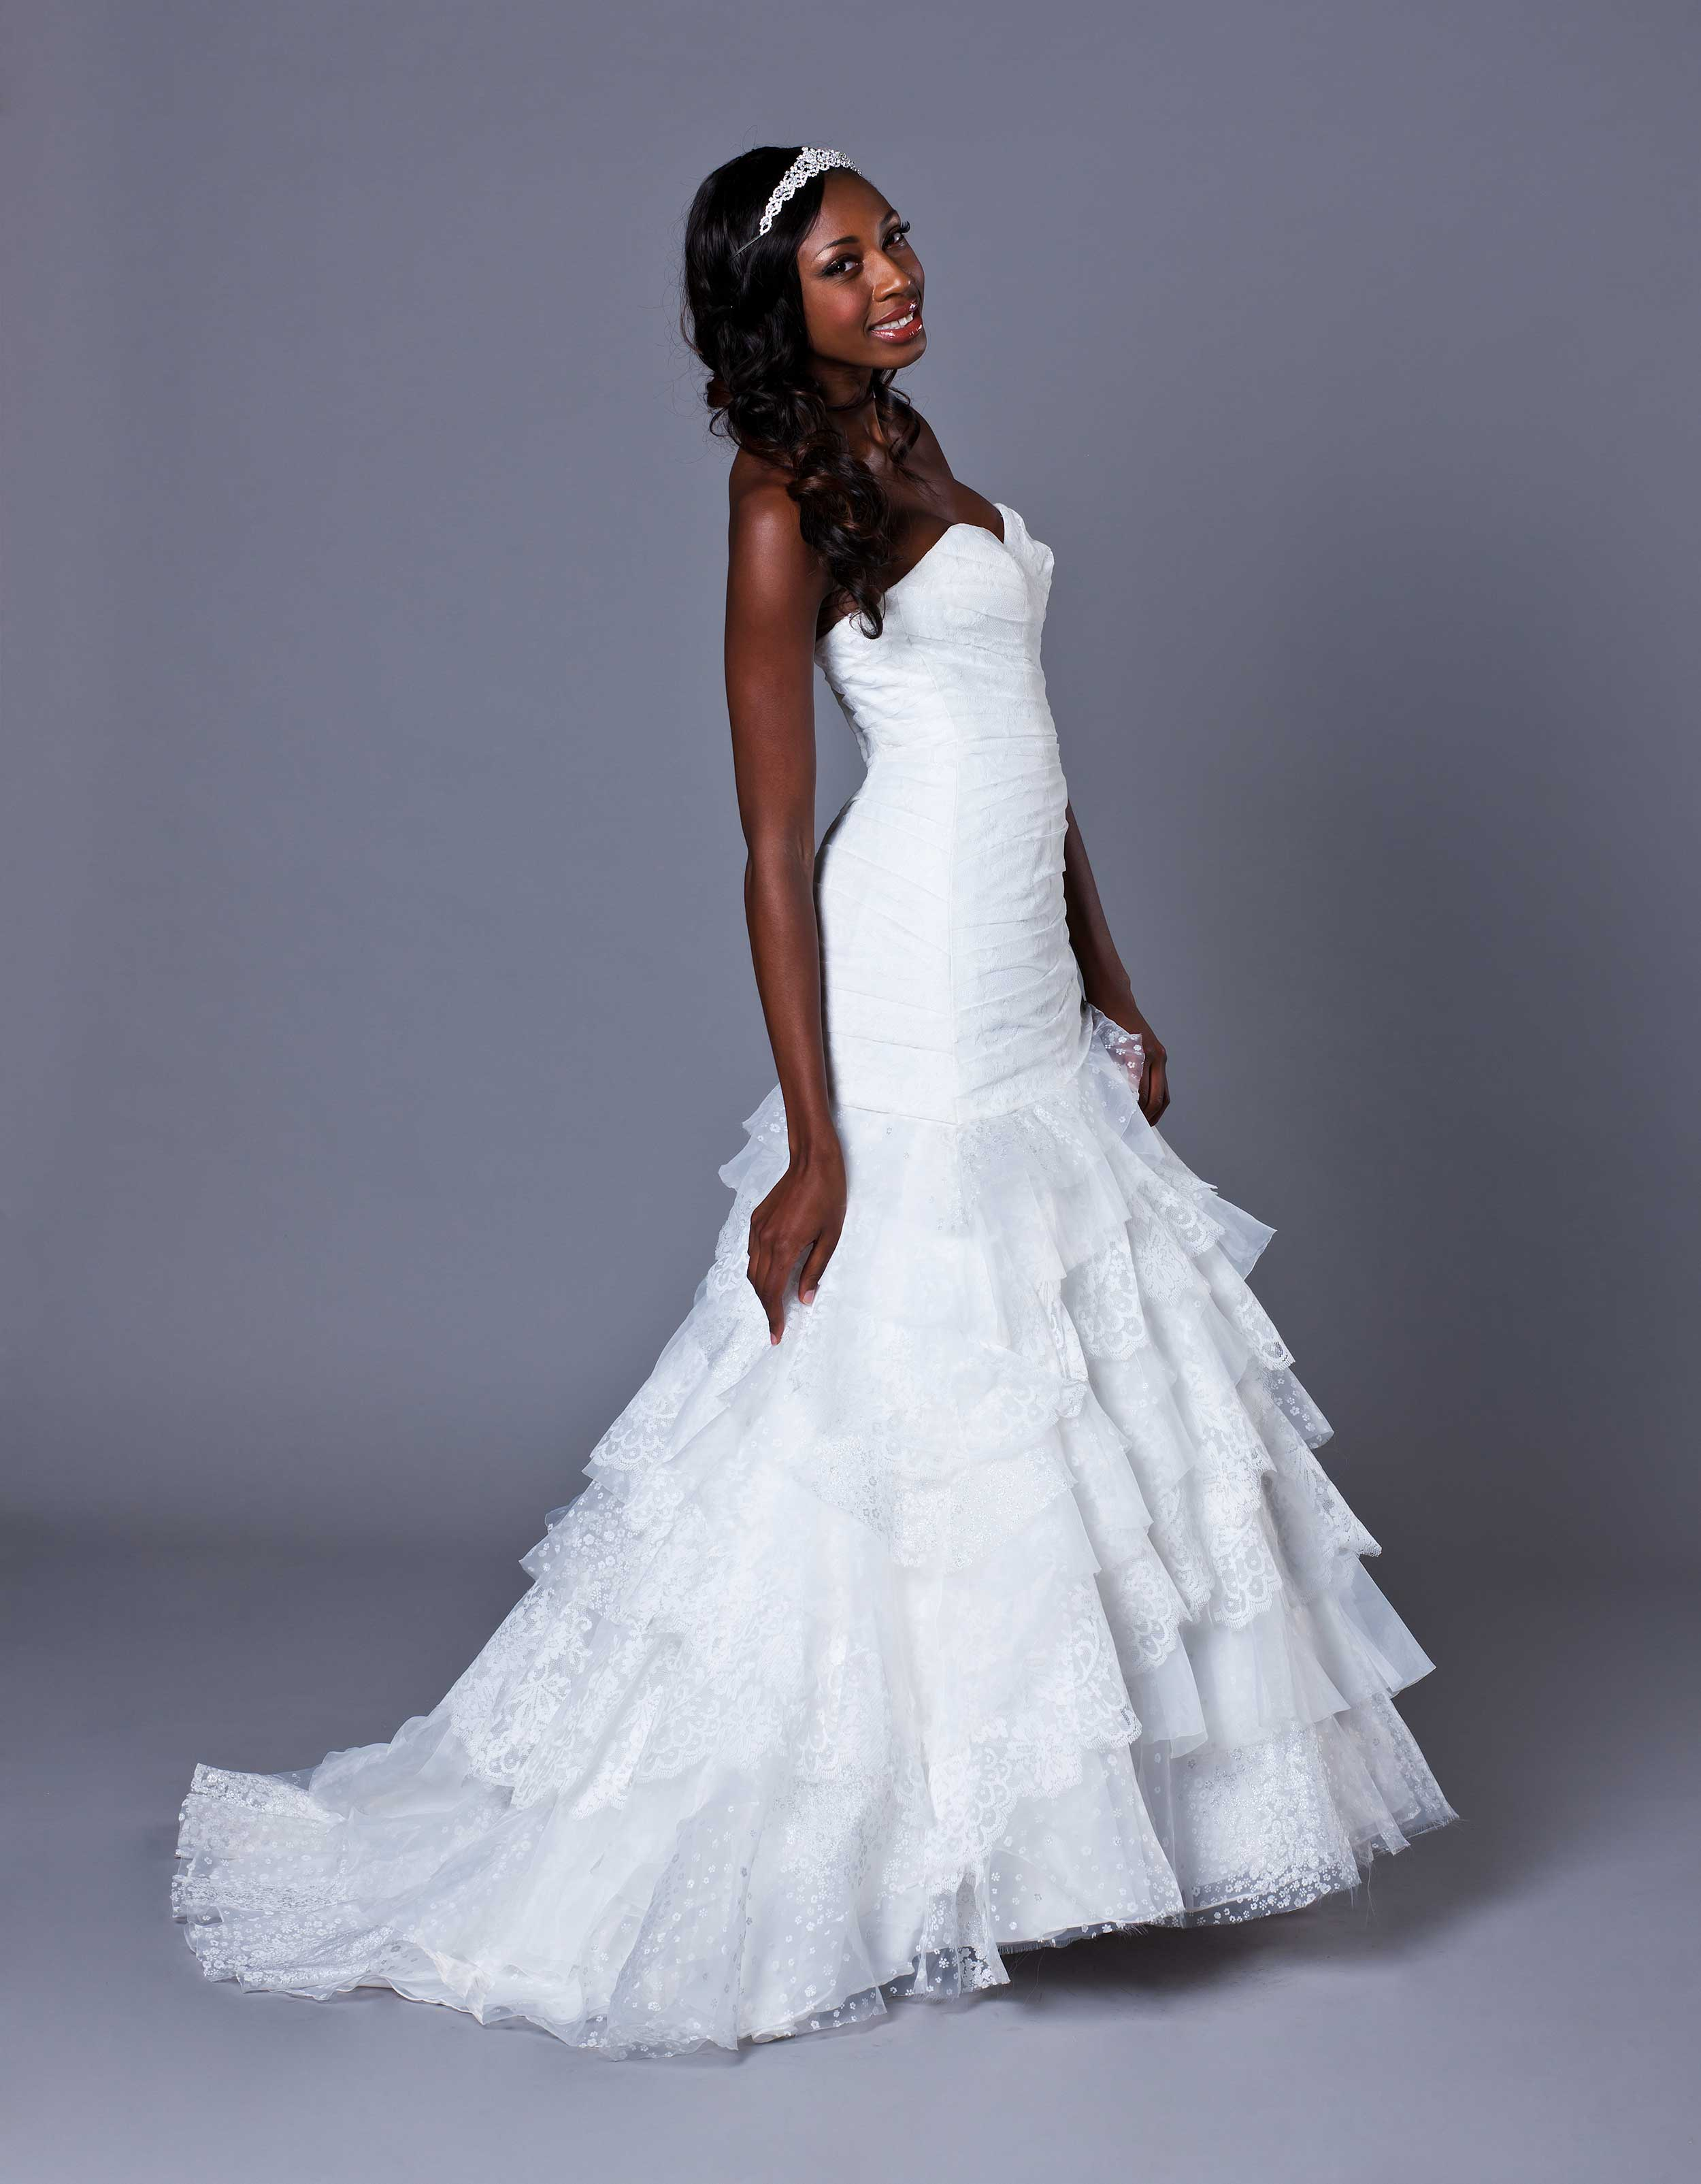 cheap wedding dresses sale south africa free image gallery